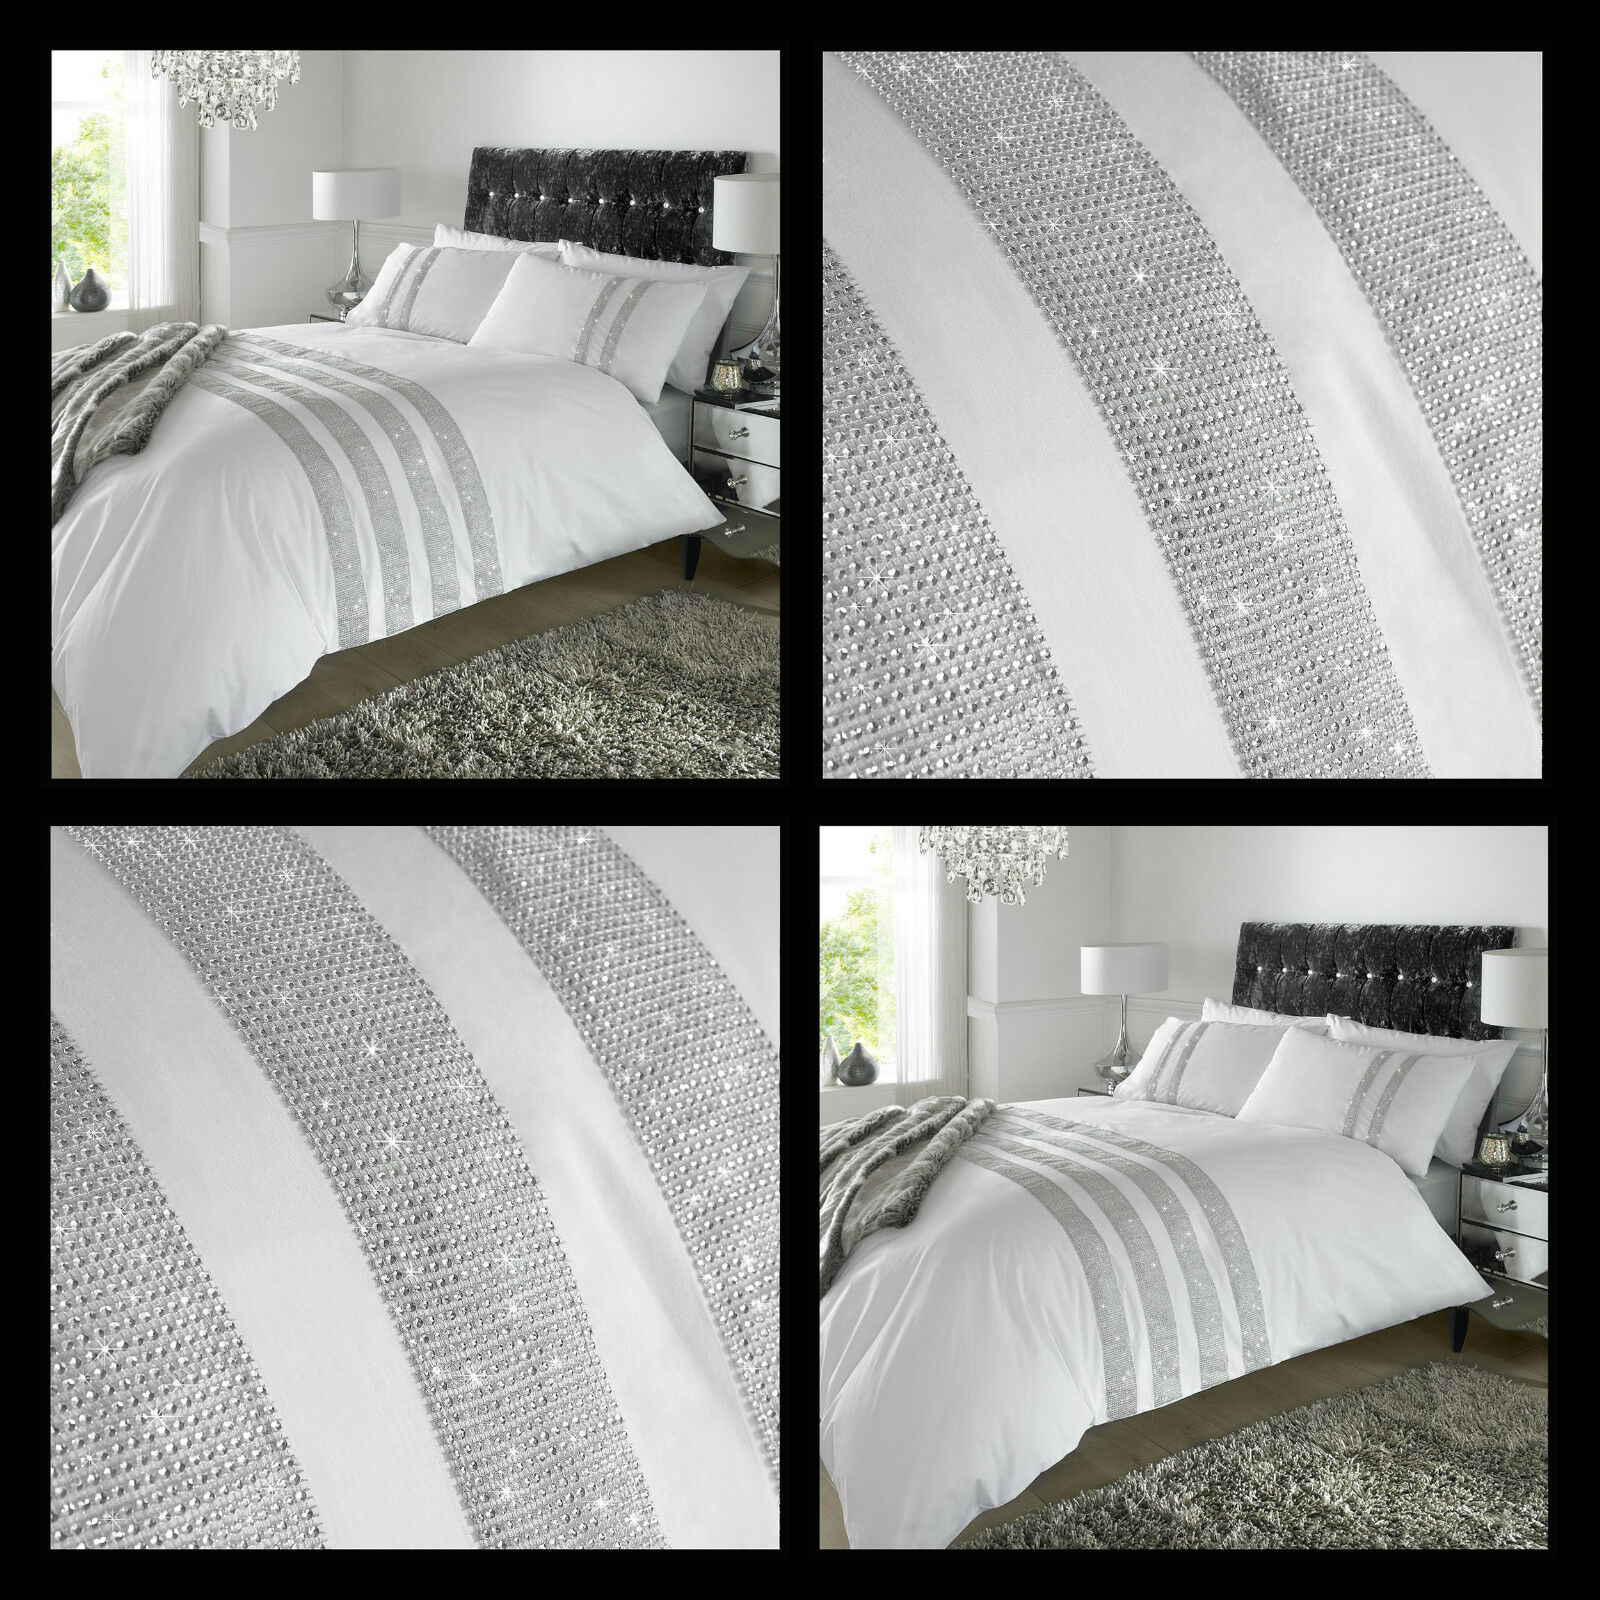 Duvet Cover Diamante Crystal Weiß Detail Quilt Bedding Set Percale Fabric